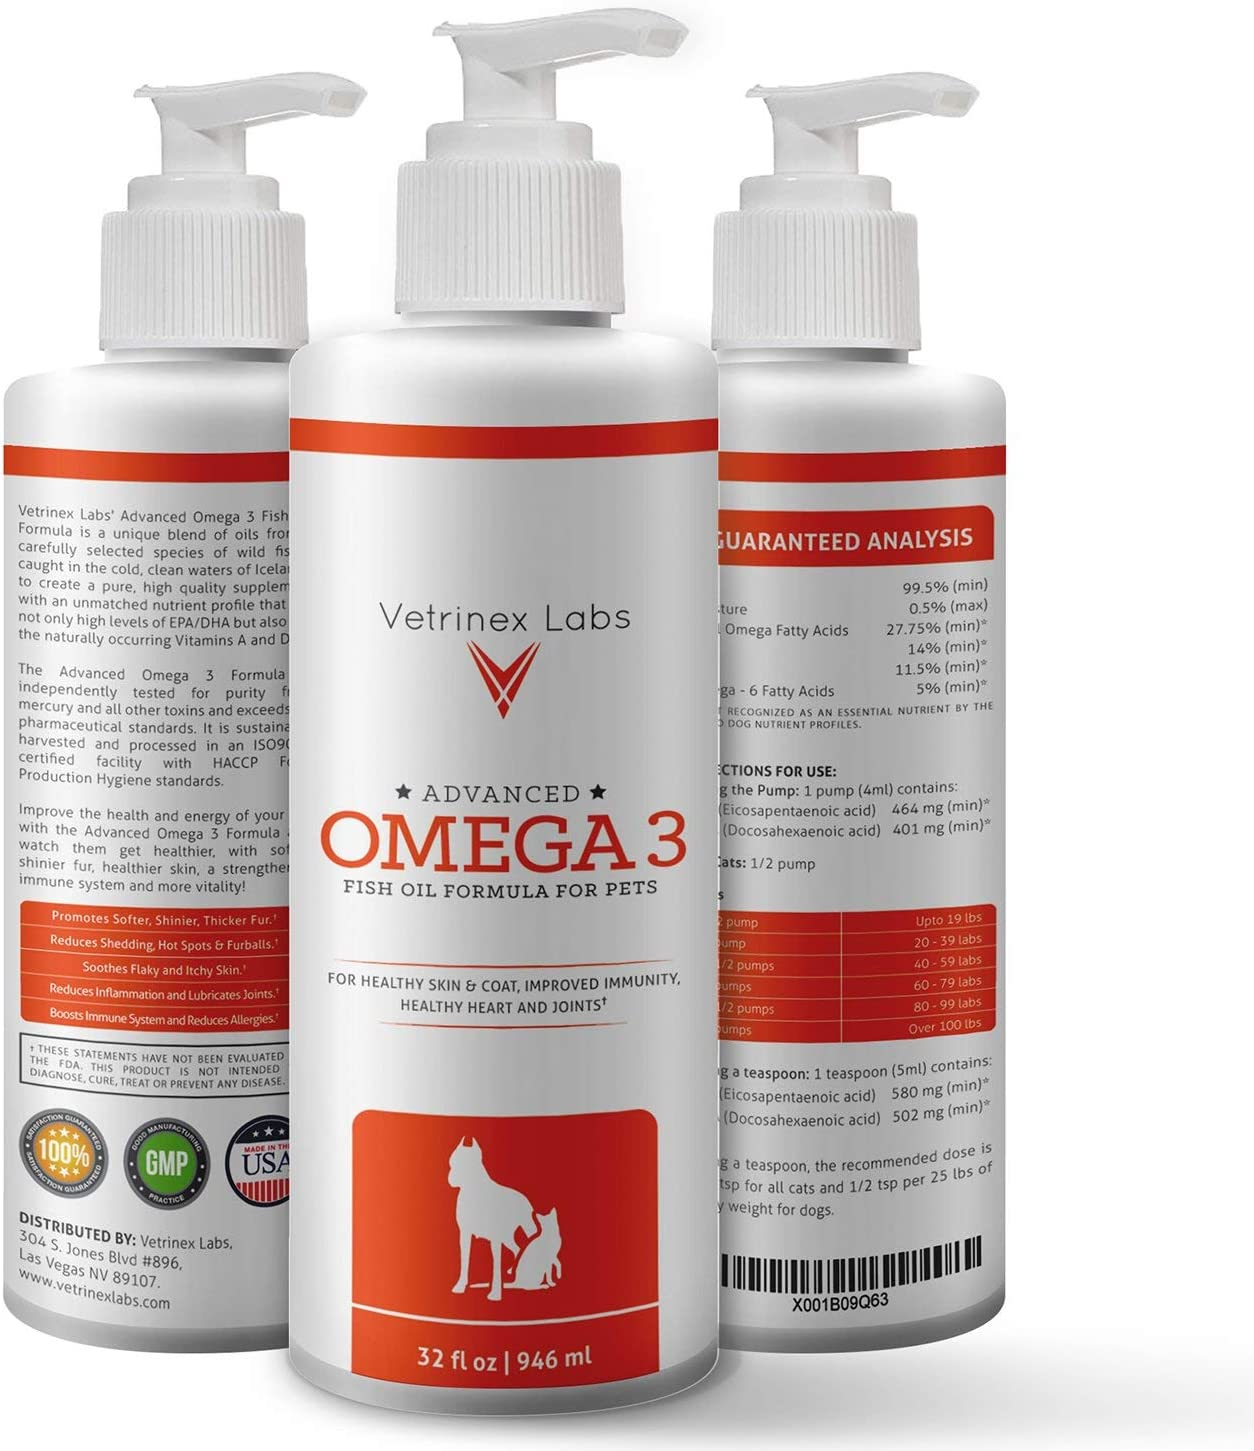 Pure Wild Caught Omega 3 Fish Oil for Dogs & Cats - Unique All Natural Formula Supports Healthy Skin & Coat, Joints, Heart & Immune System - Higher Levels of EPA & DHA than Salmon Oil (32 Oz)